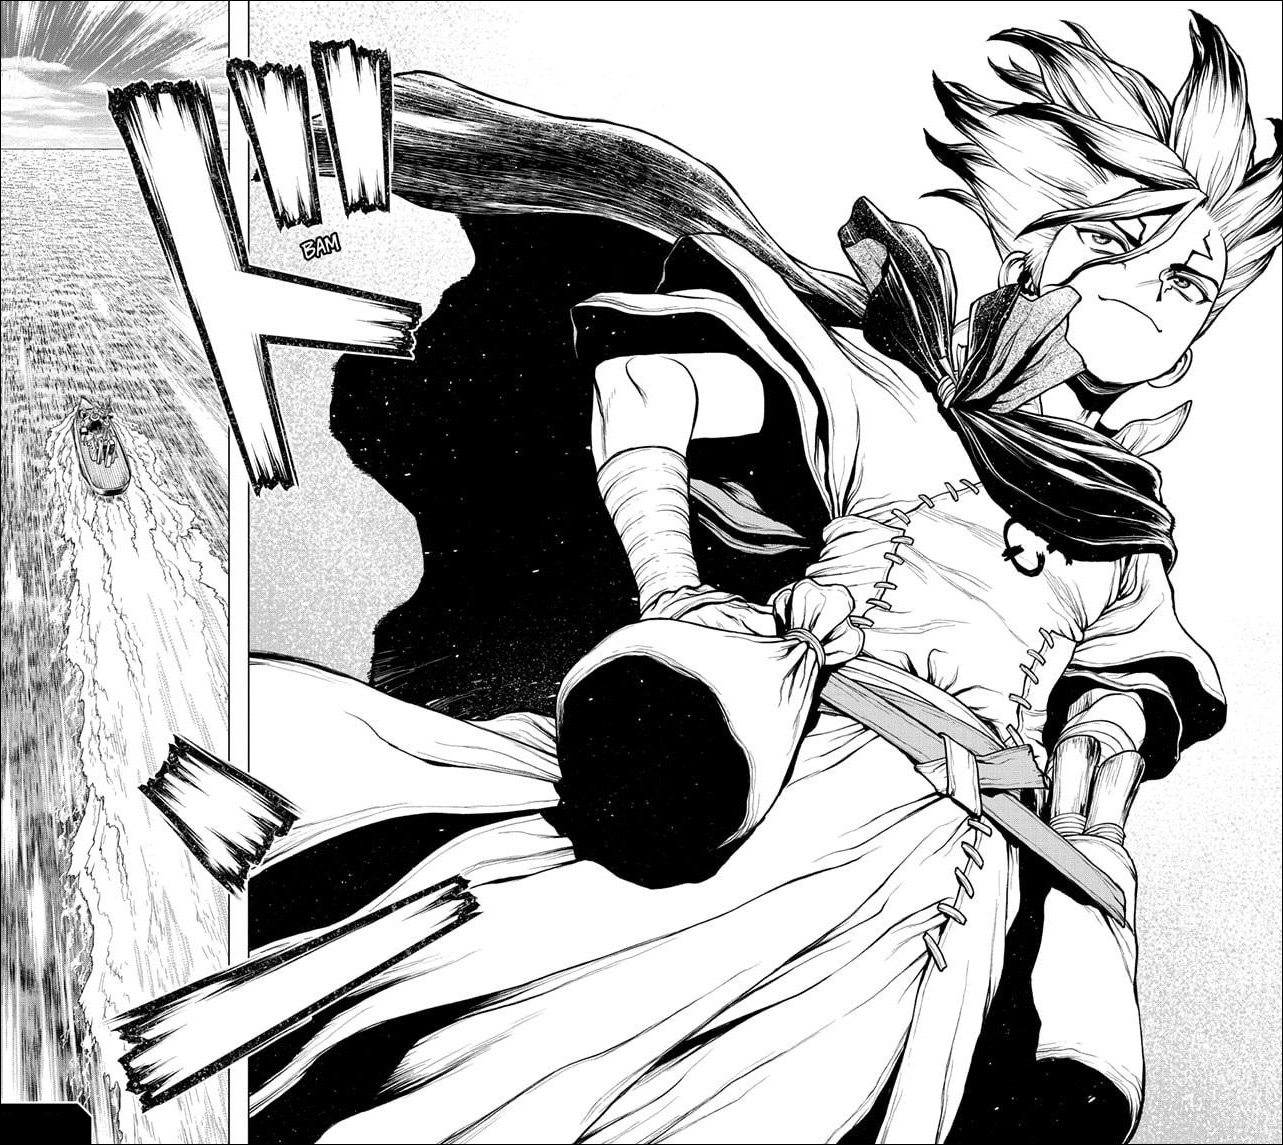 Dr. Stone chapter 200 - Senku heads across the Atlantic to build other cities and procure more resources for the spaceship construction